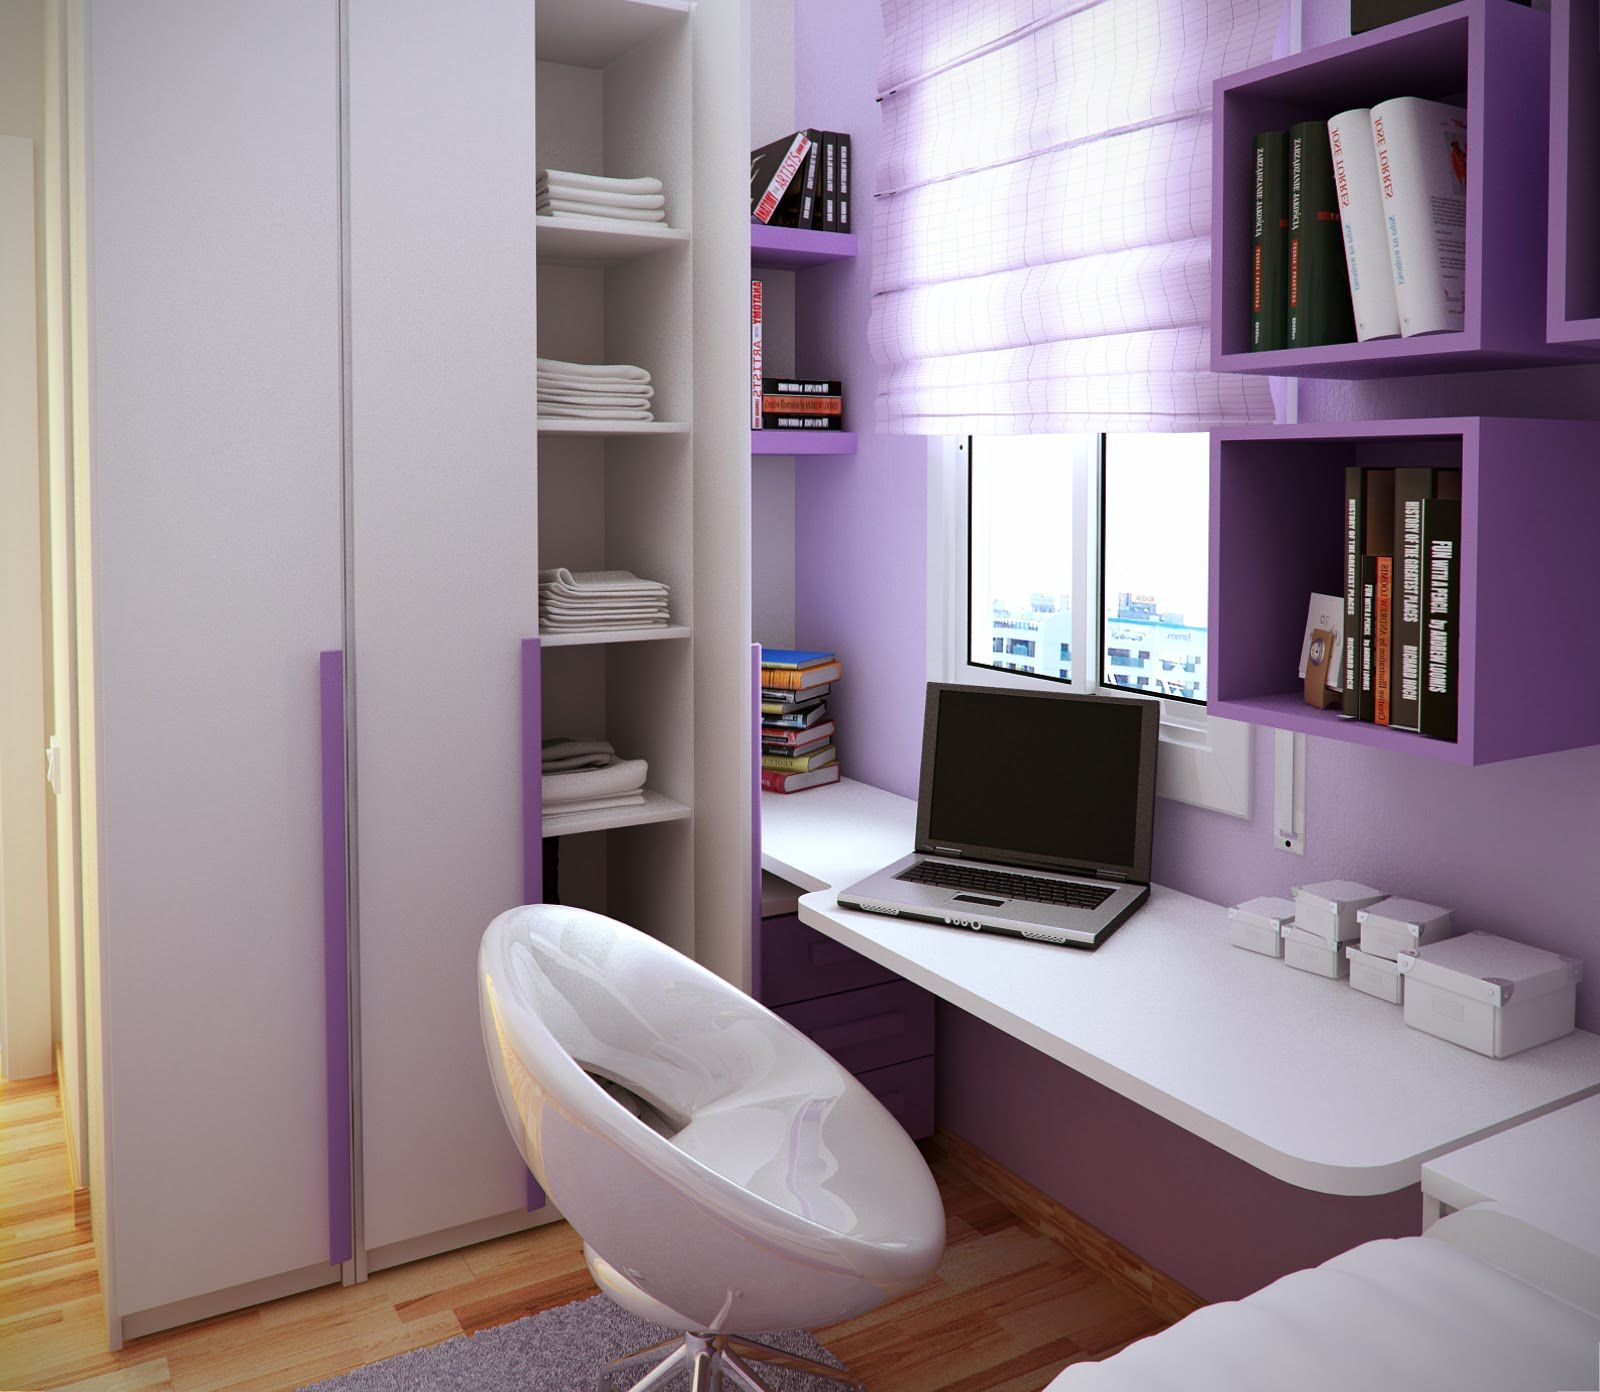 Tiny Room Design Stunning I Feel Like I Would Be So Much More Inclined To Do My Homework If . Inspiration Design